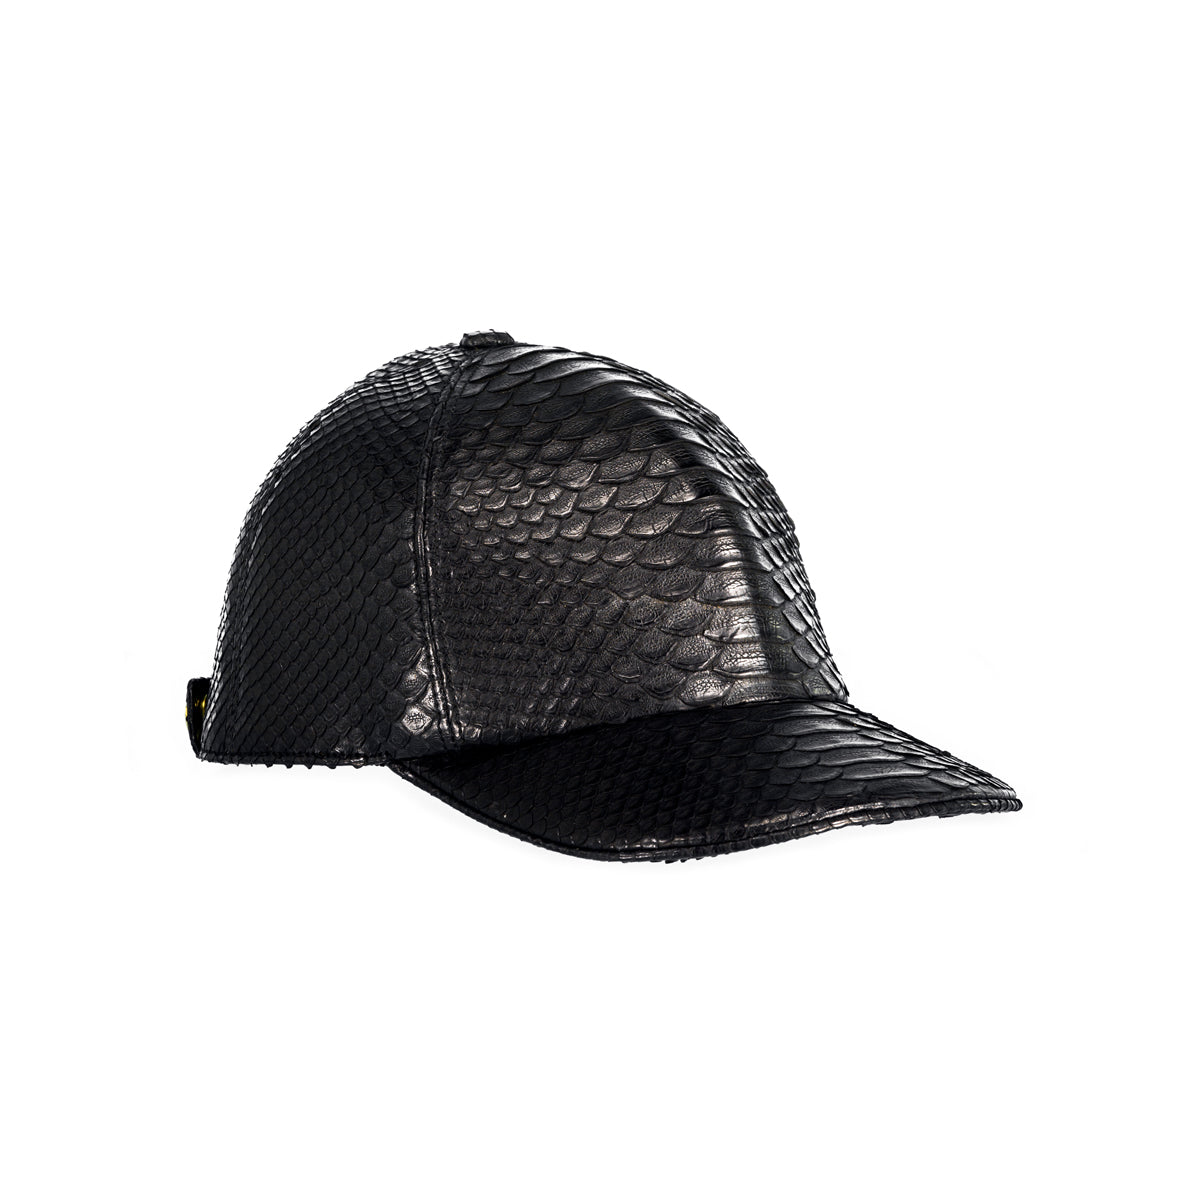 The Big Deep Baseball Hat - Black Python